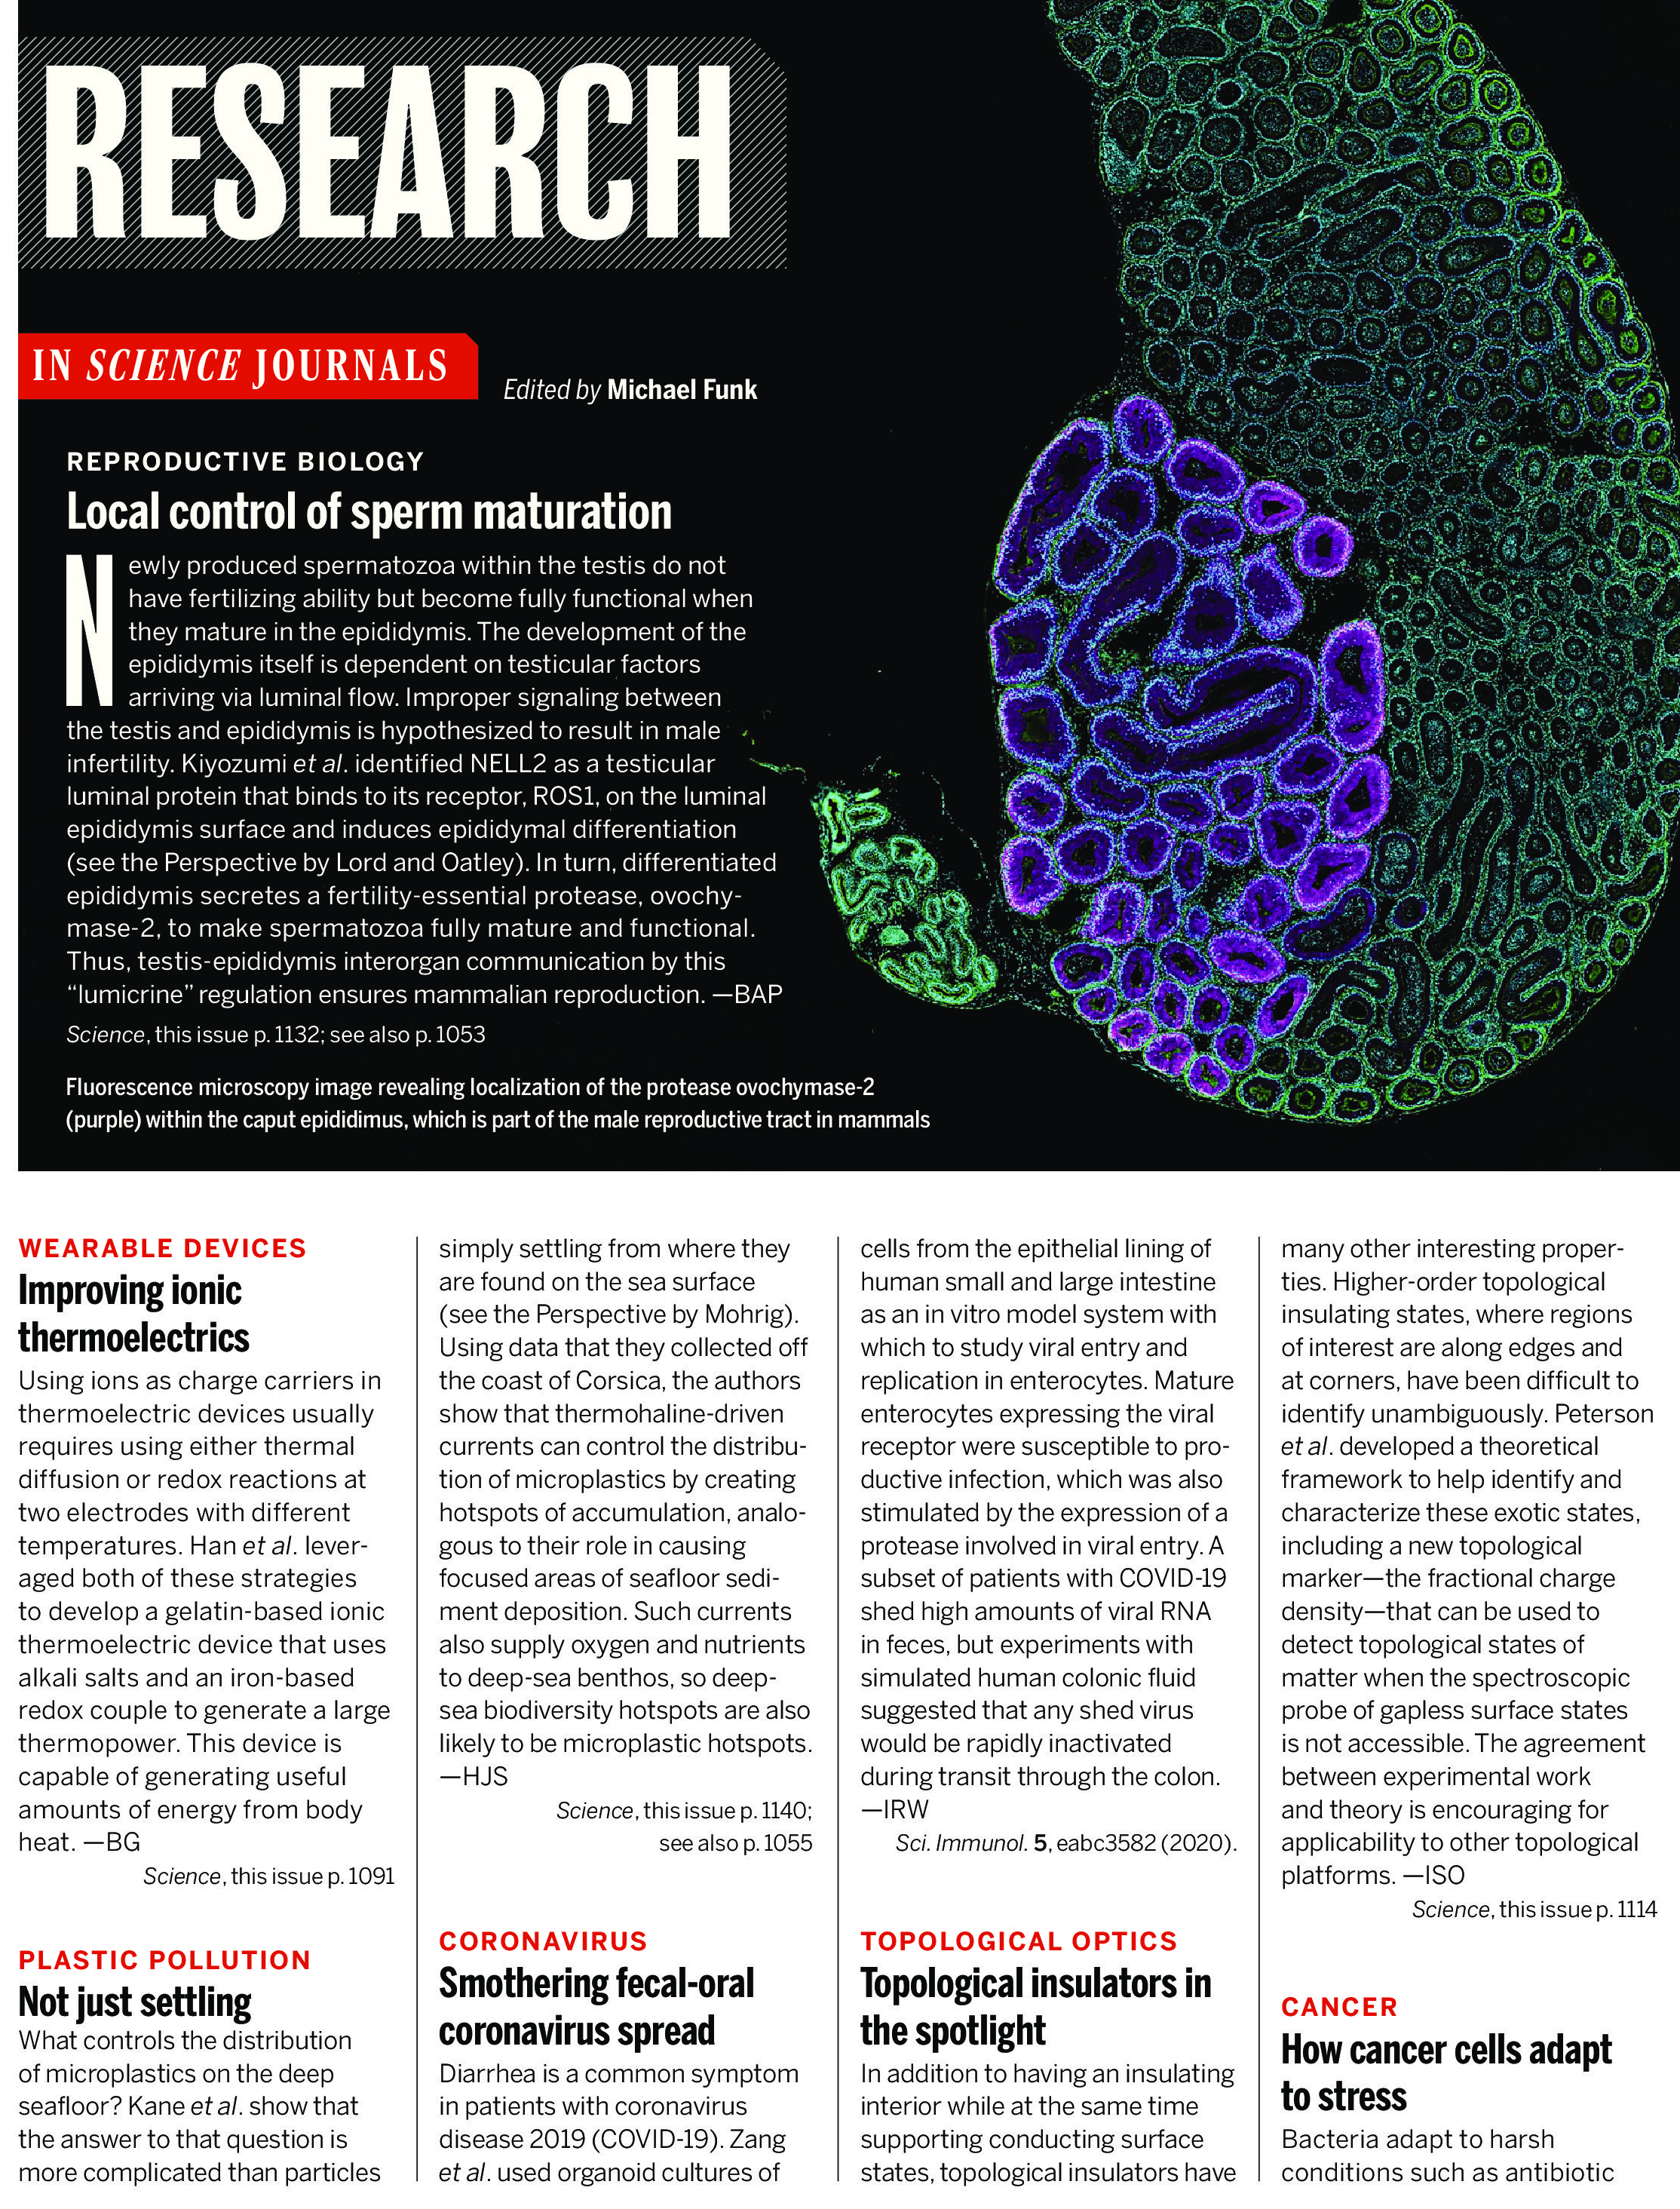 SCIENCE MAGAZINE RESEARCH HIGHLIGHTS - JUNE 5 2020